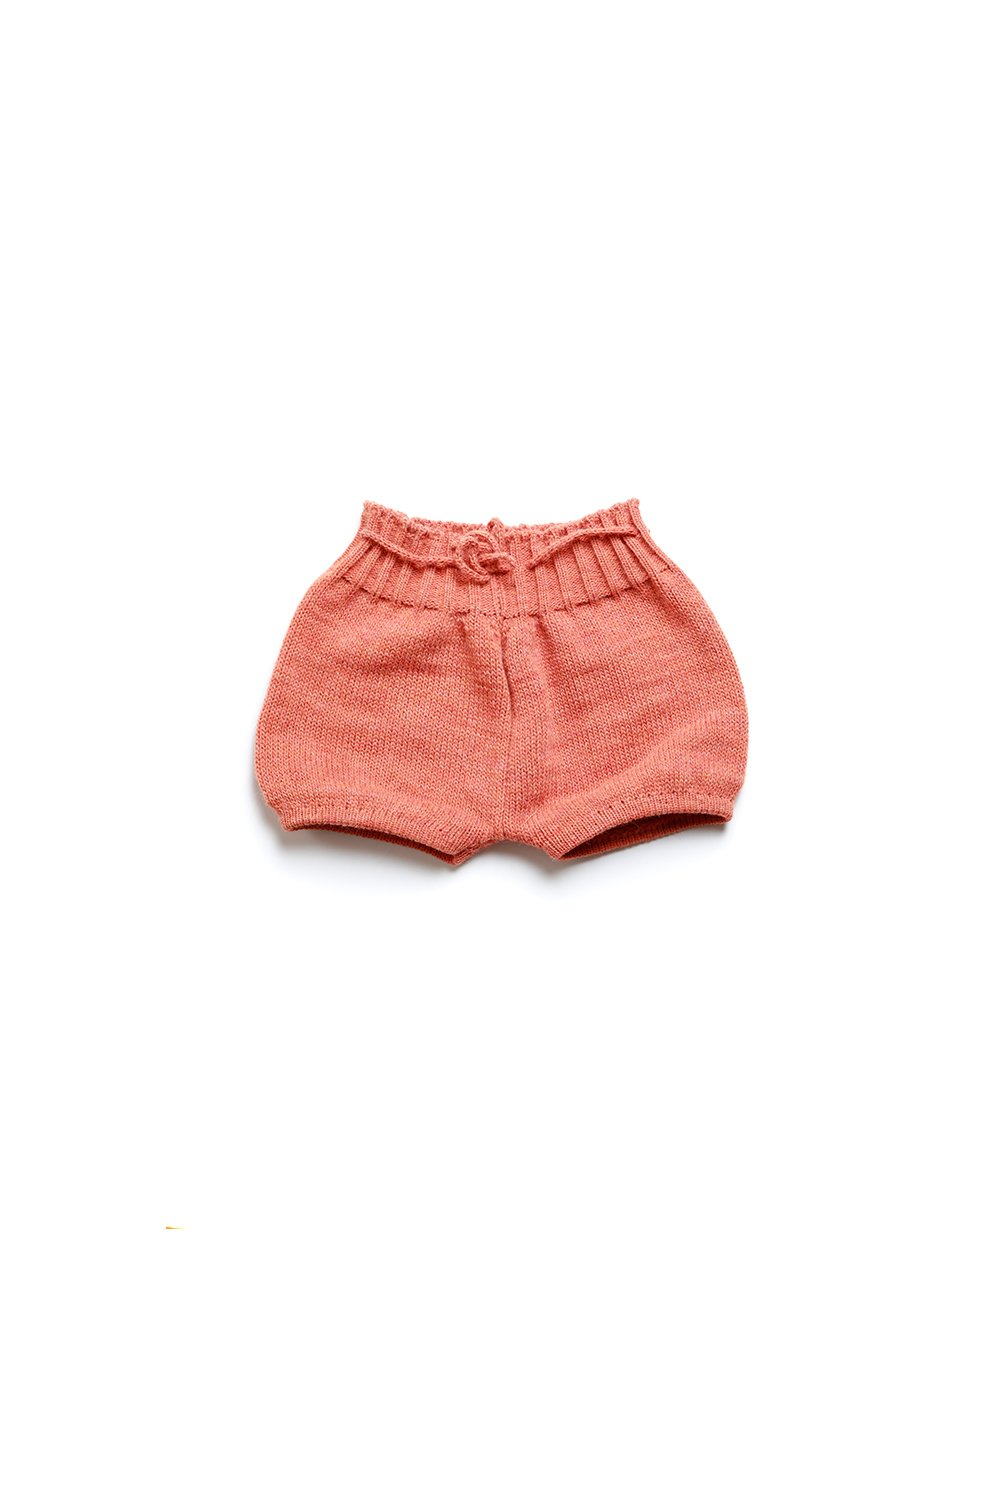 1748 Knit Shortie CW8